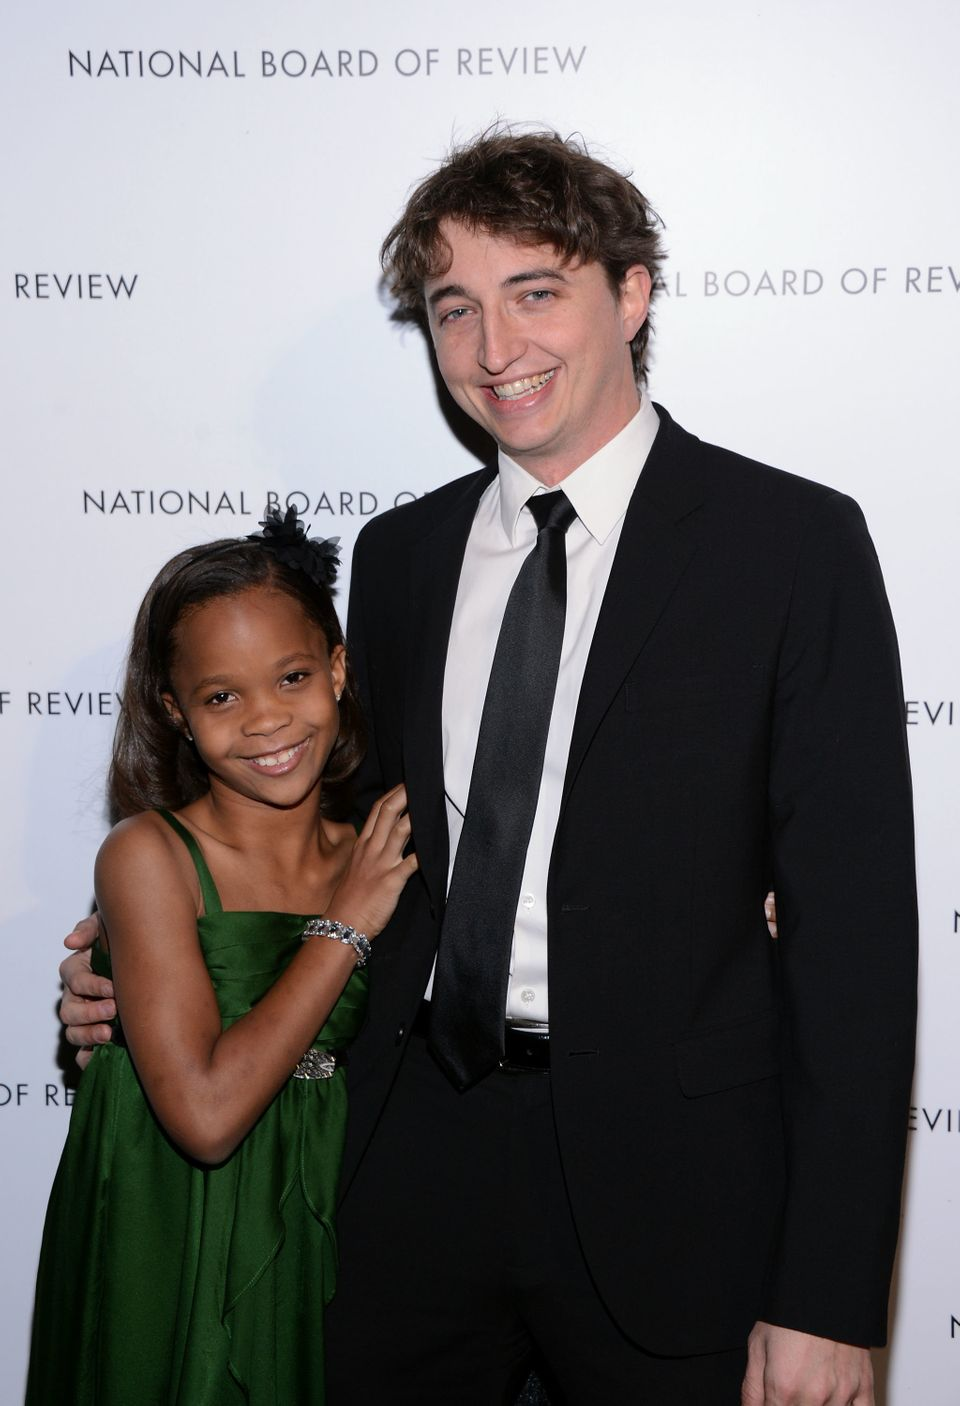 NEW YORK, NY - JANUARY 08:  Actress Quvenzhane Wallis and Director Benh Zeitlin attend the 2013 National Board Of Review Awar